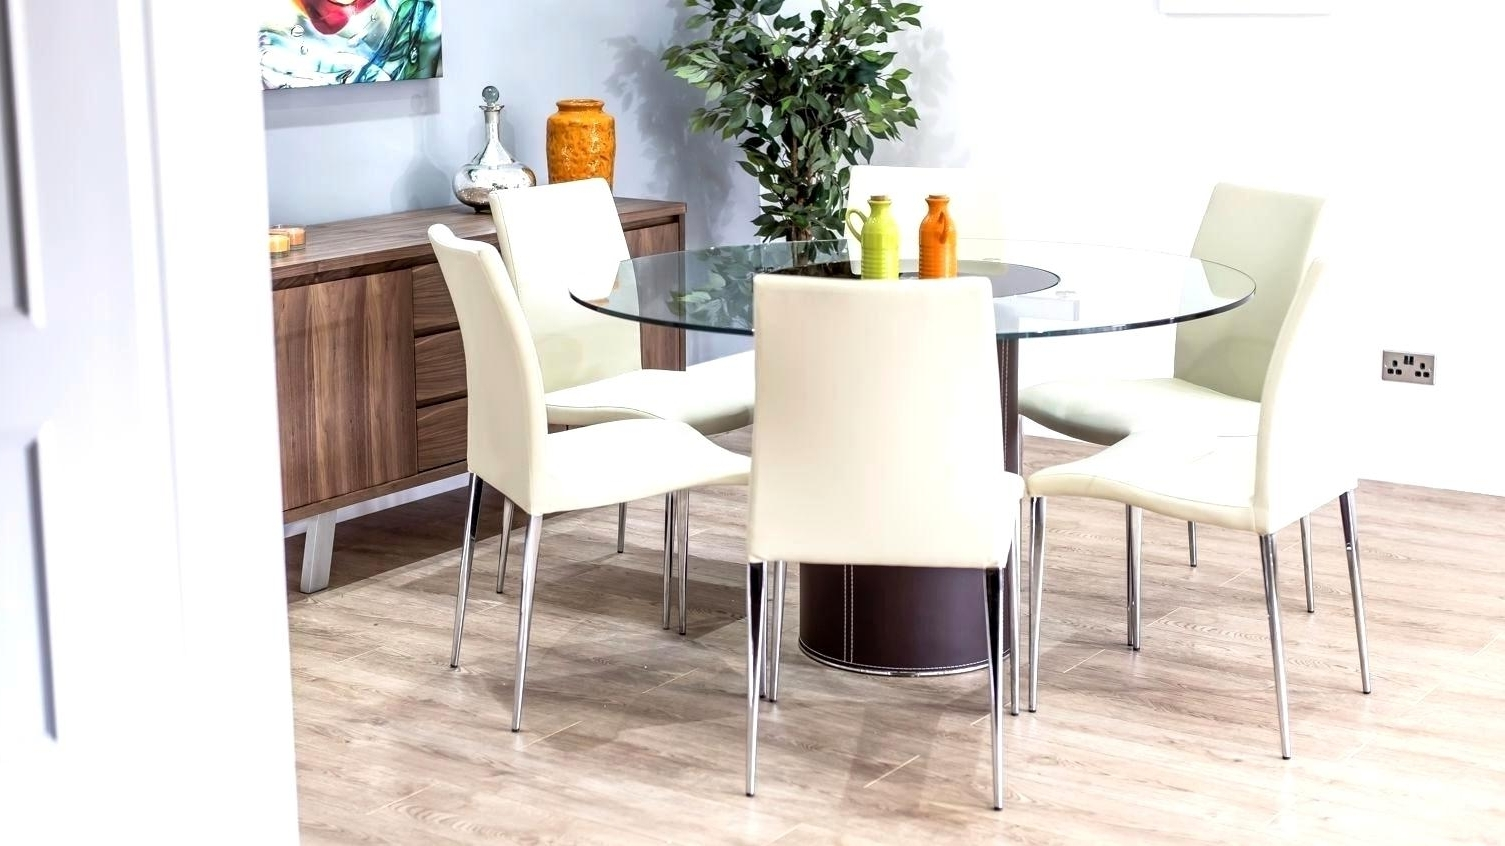 Dining Tables For Six In Well Known Improbable Dining Table With Six Chairs Ideas As Room Sets For Ideas (View 9 of 25)